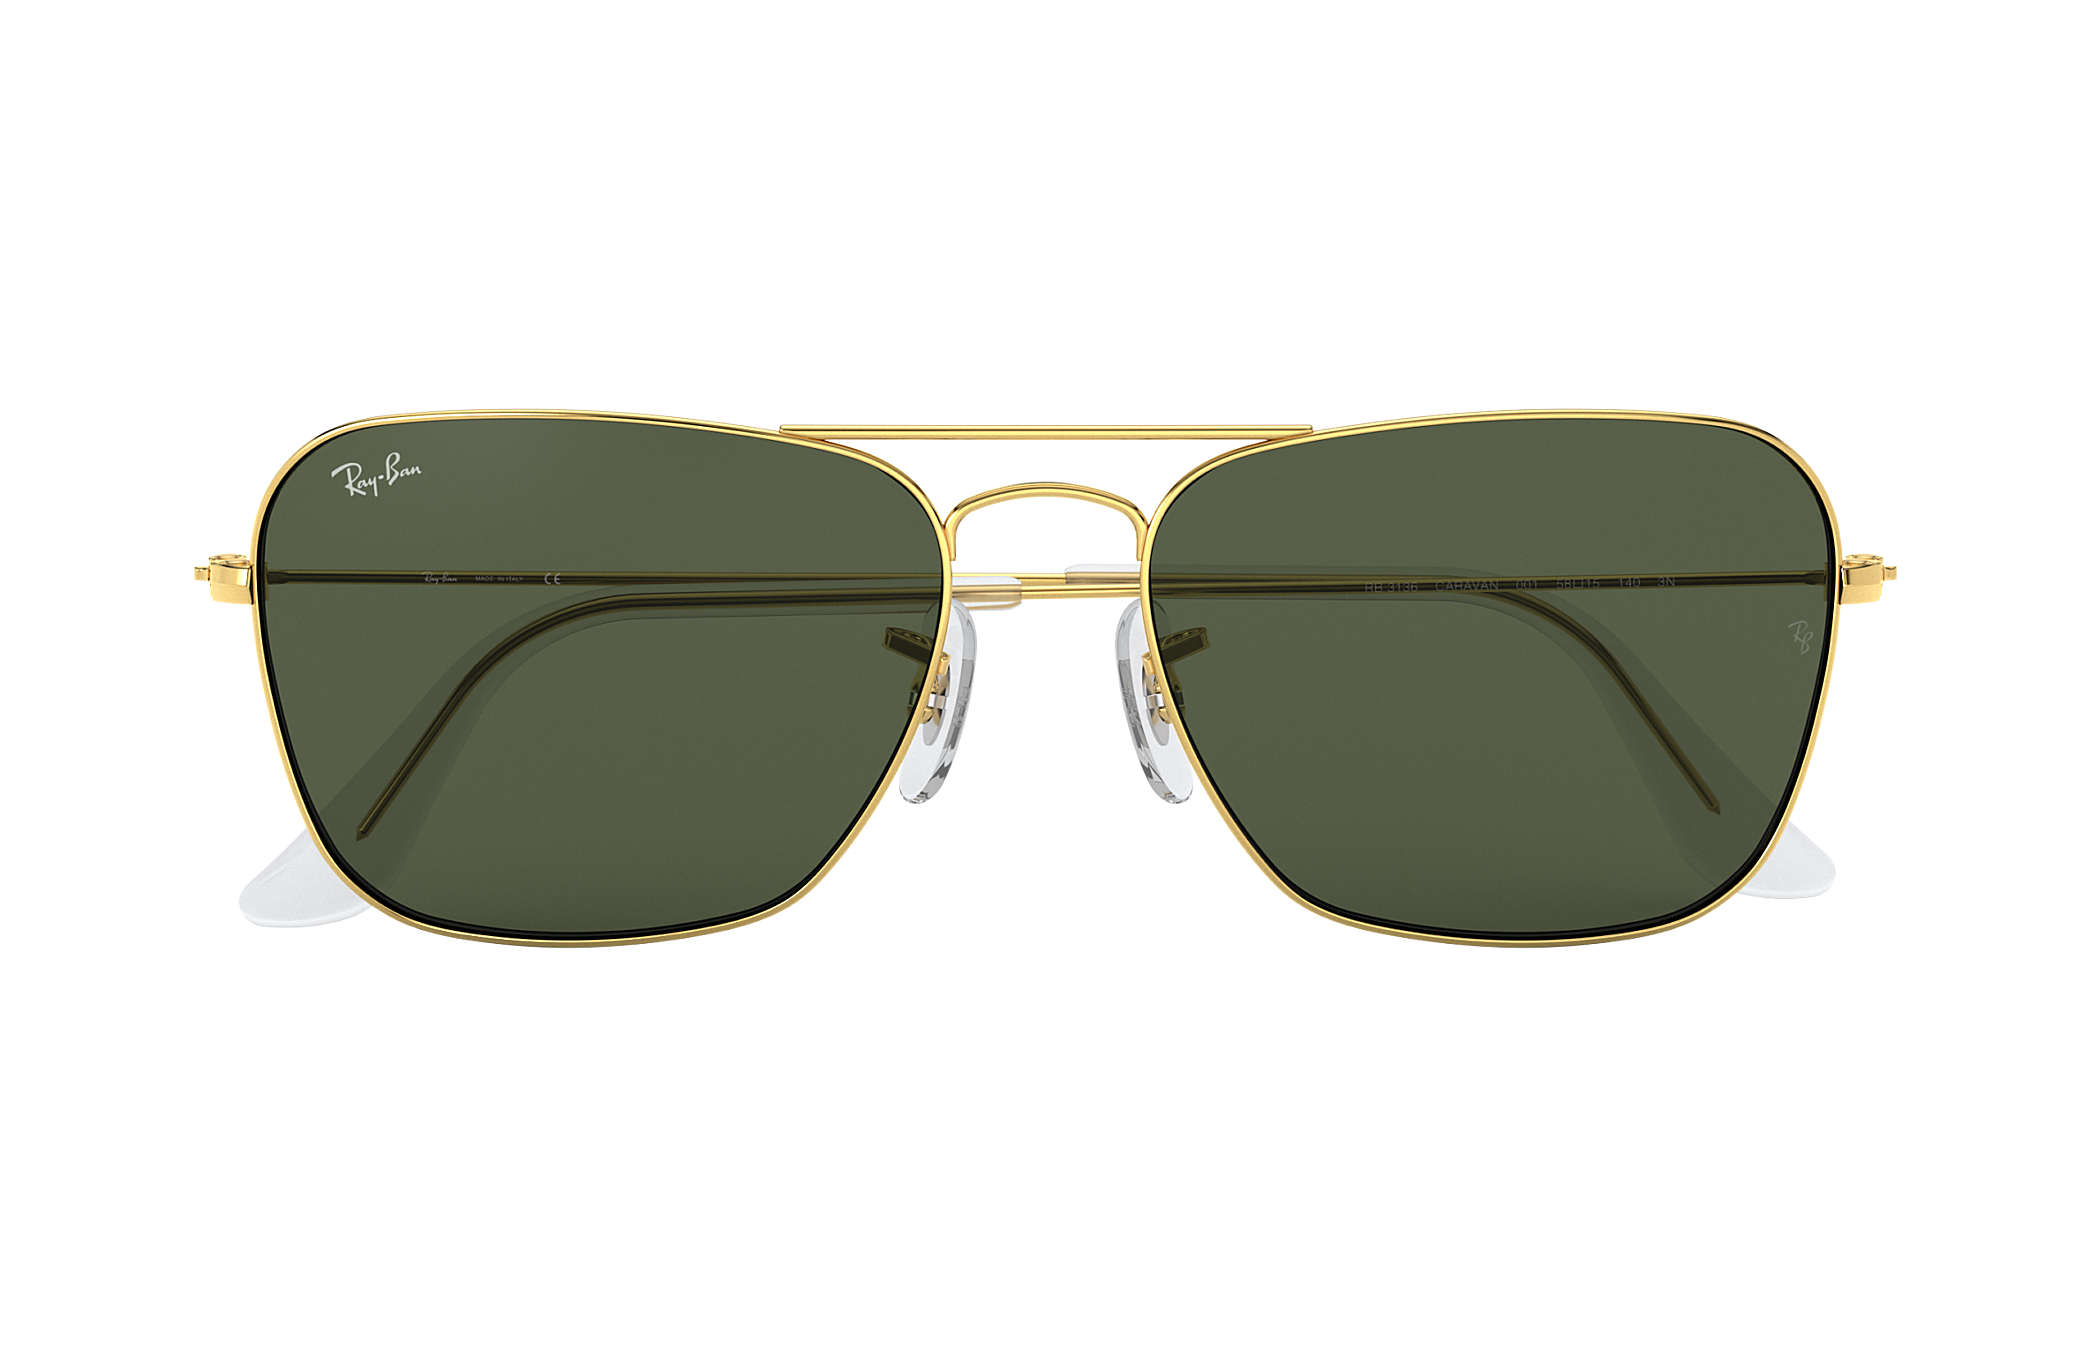 75c0ae7b15 Ray-Ban Caravan RB3136 Gold - Metal - Green Lenses - 0RB313600155 ...